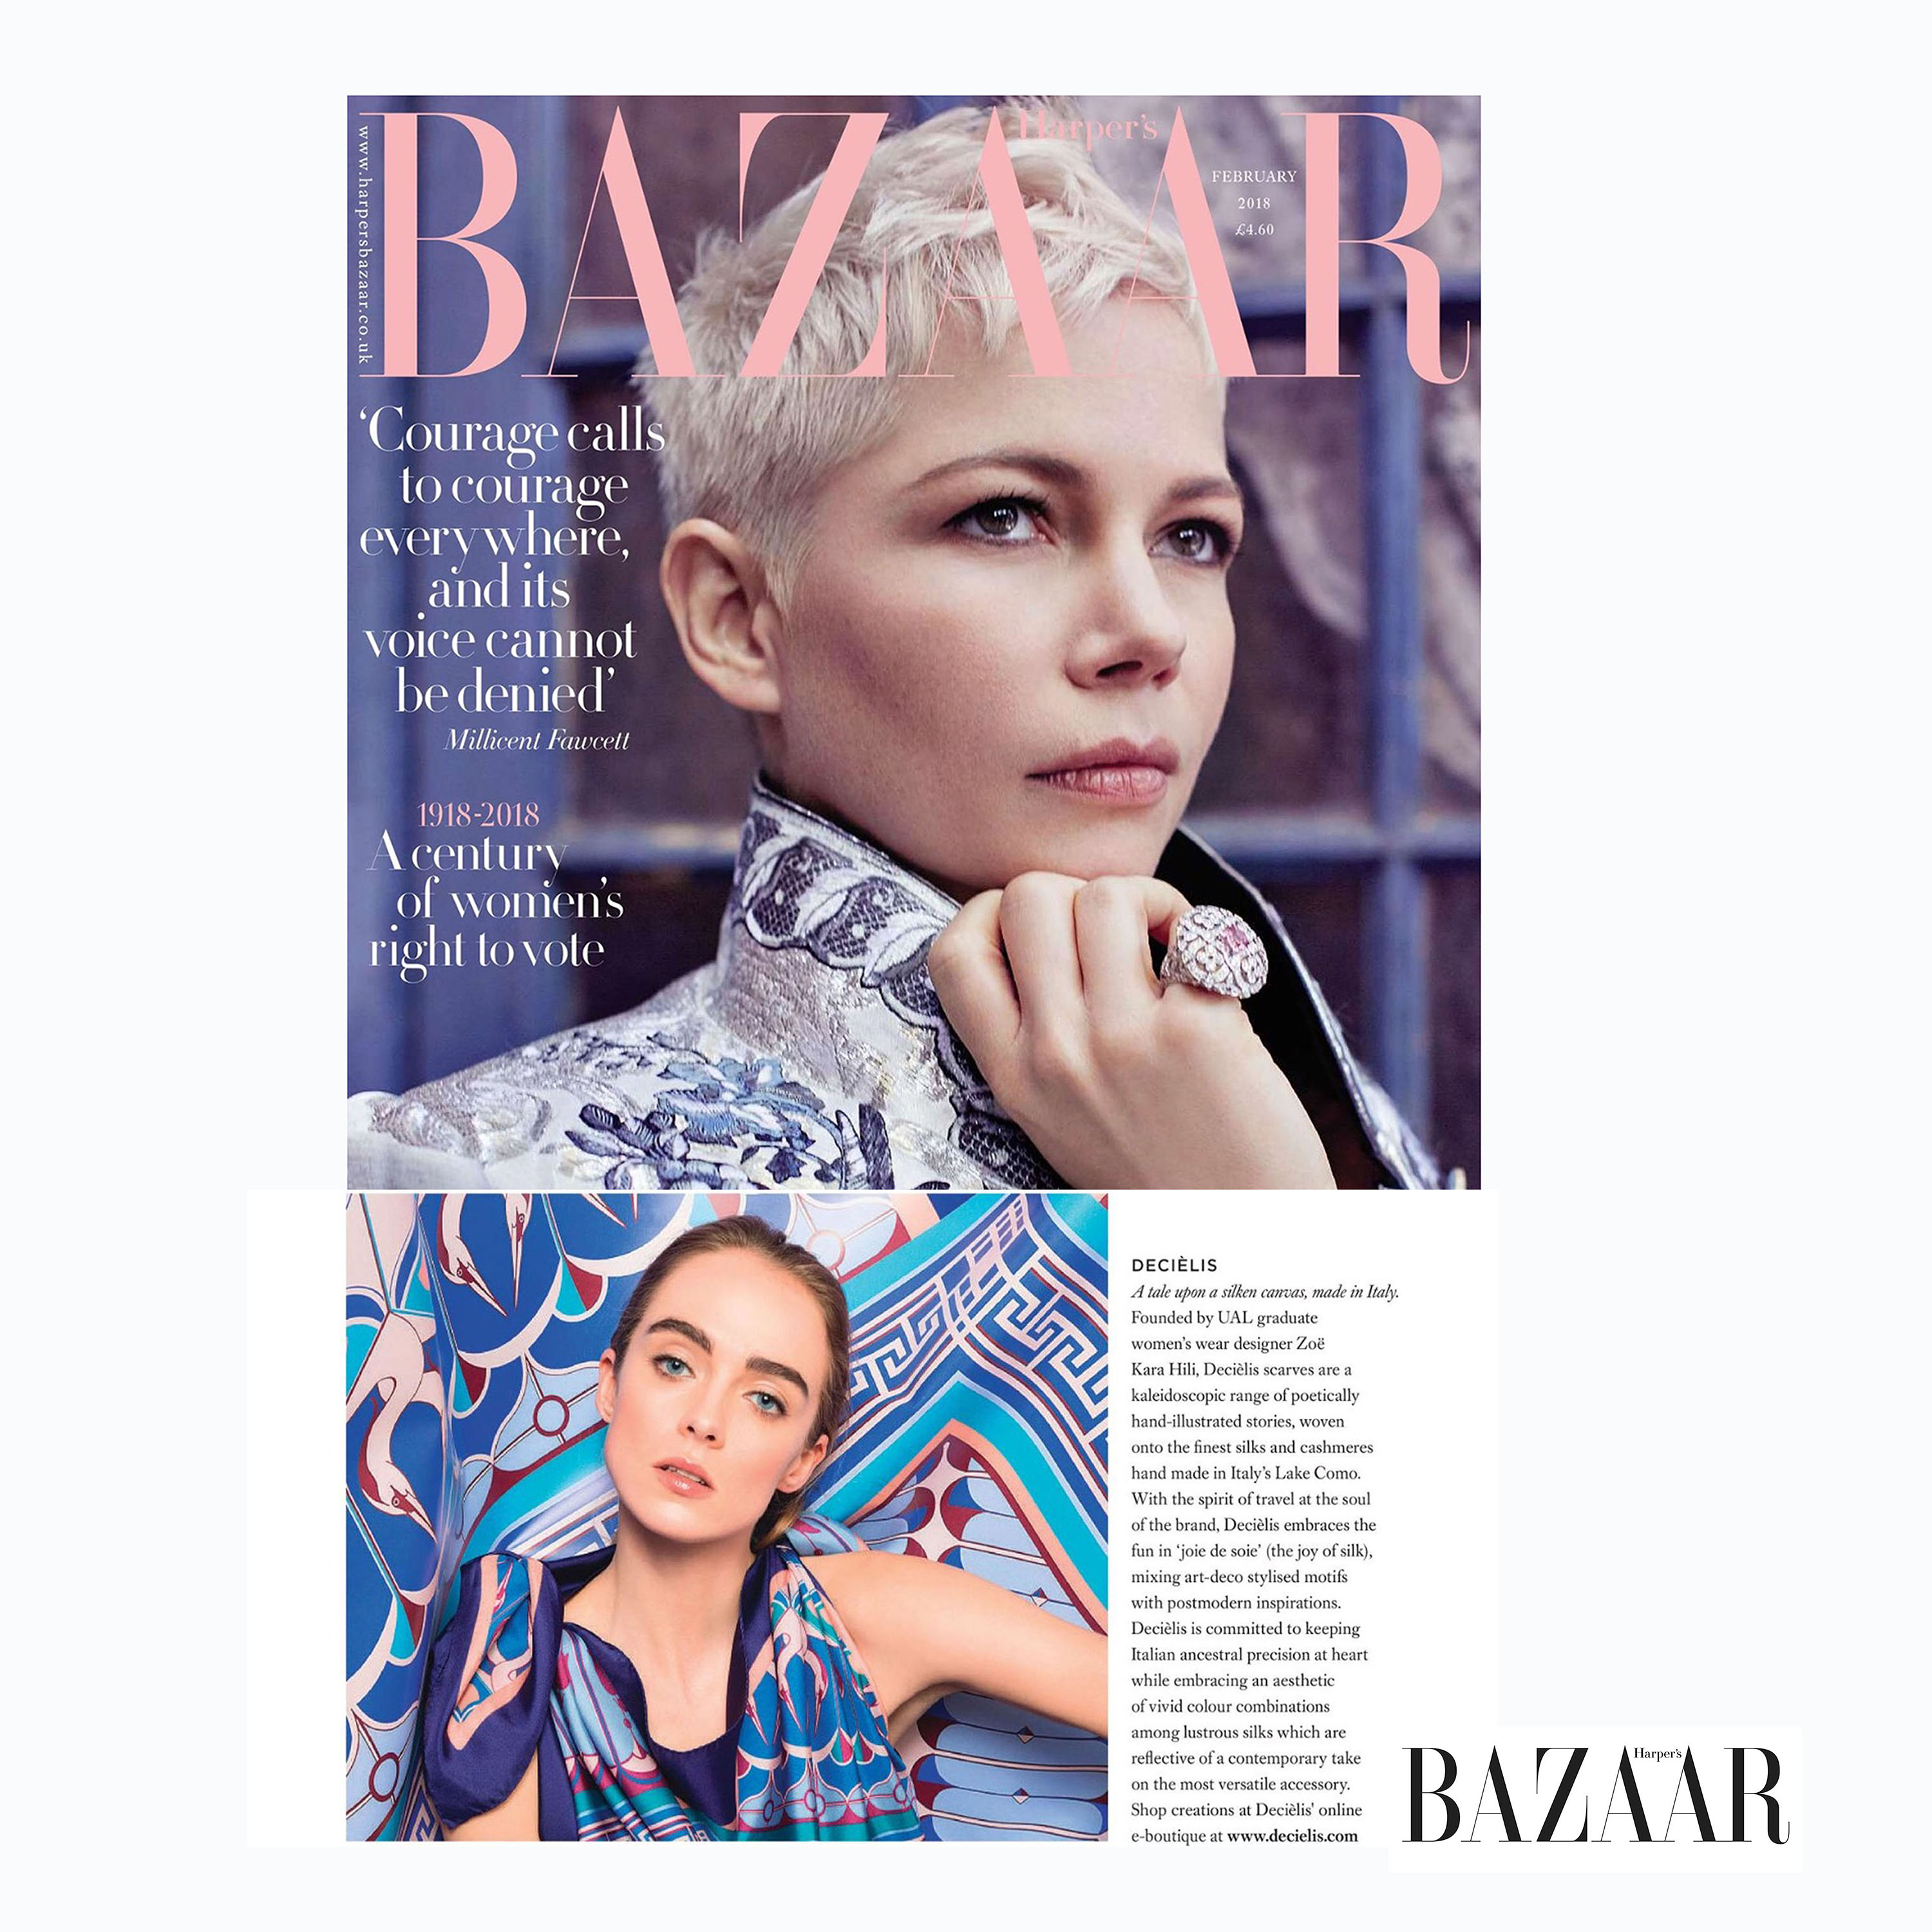 Harpers Bazaar UK feature Decièlis in February 2018 issue